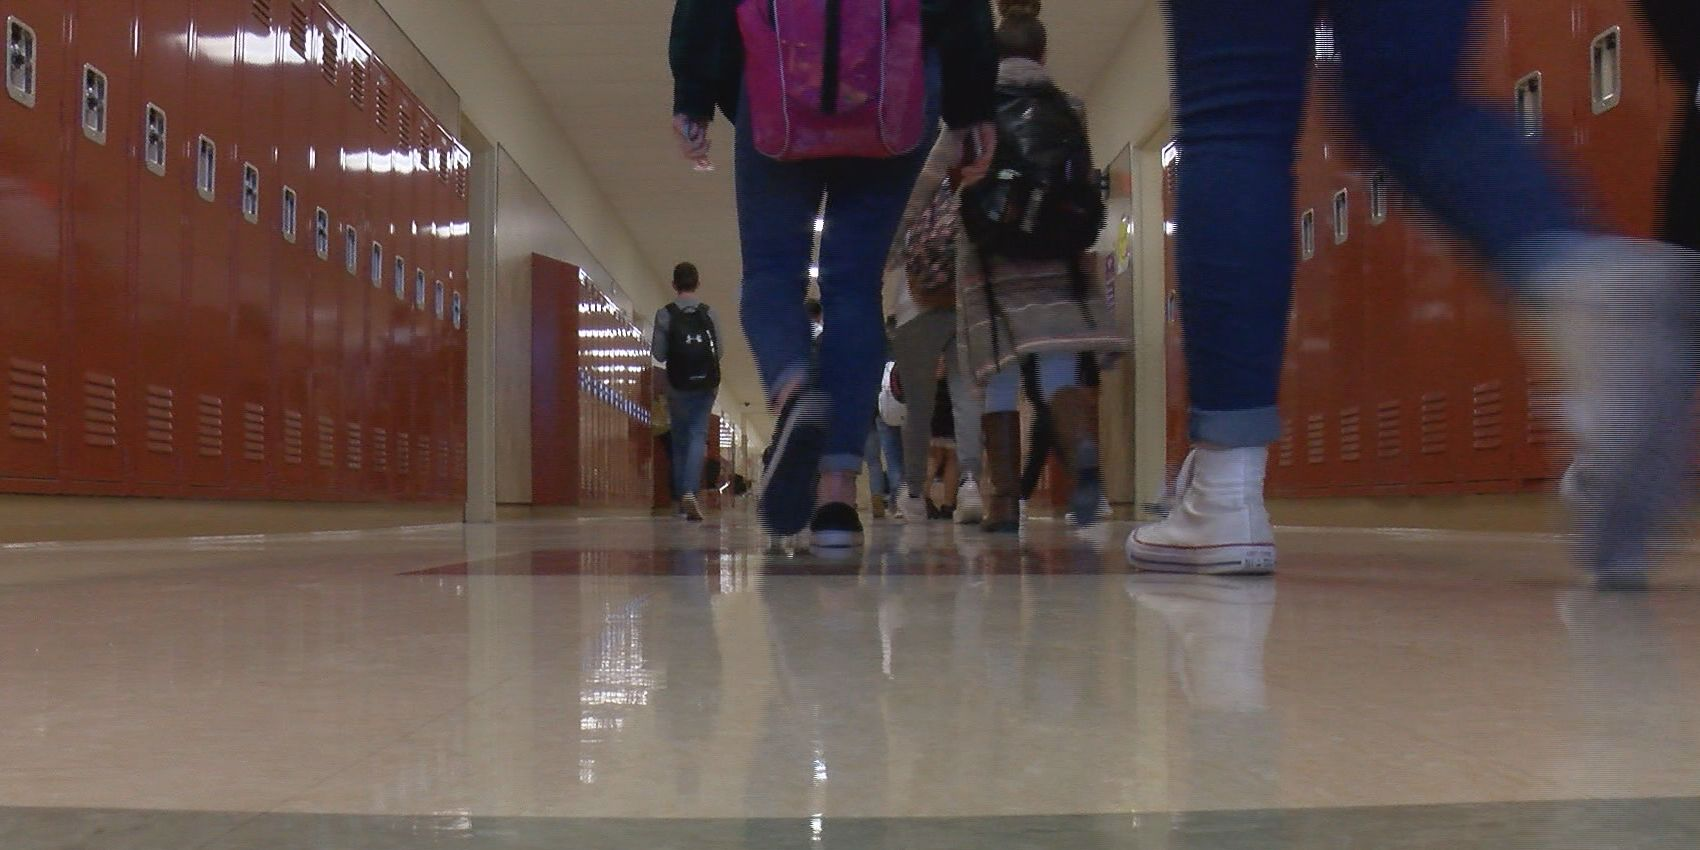 Dalhart High School disconnects cell phones to reconnect with peers